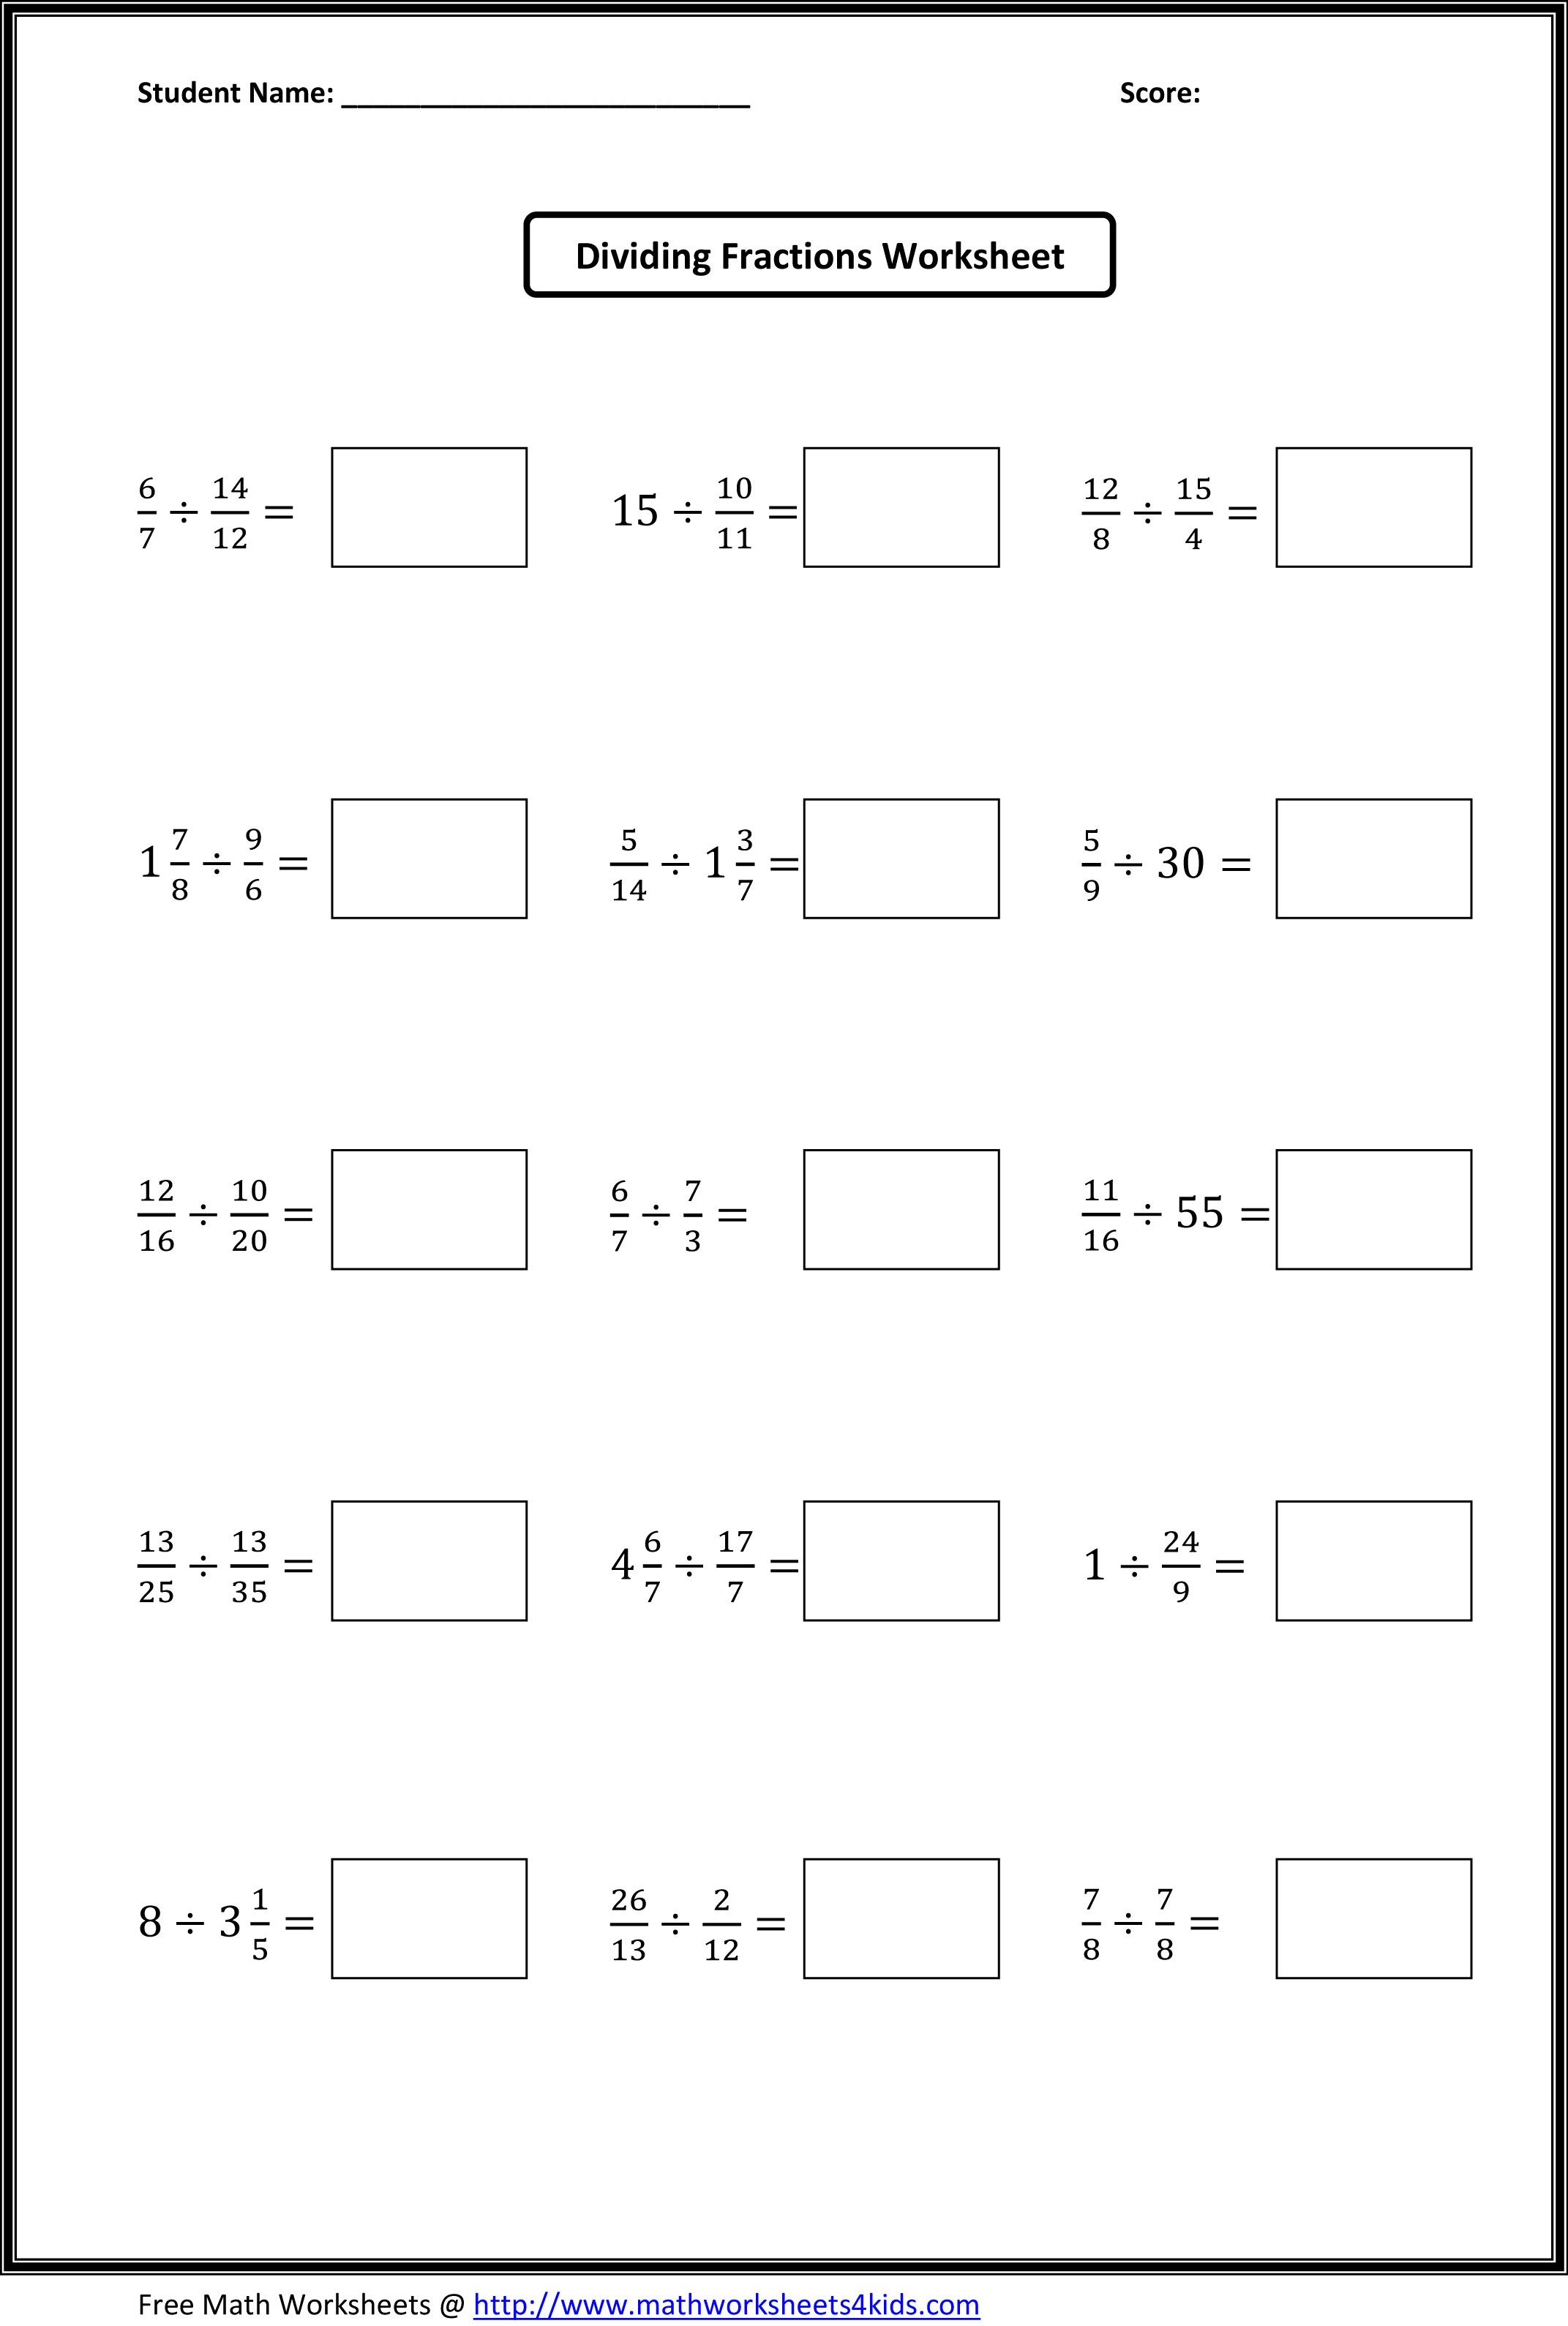 Dividing Fractions Worksheets | What's New | Pinterest | Math ...